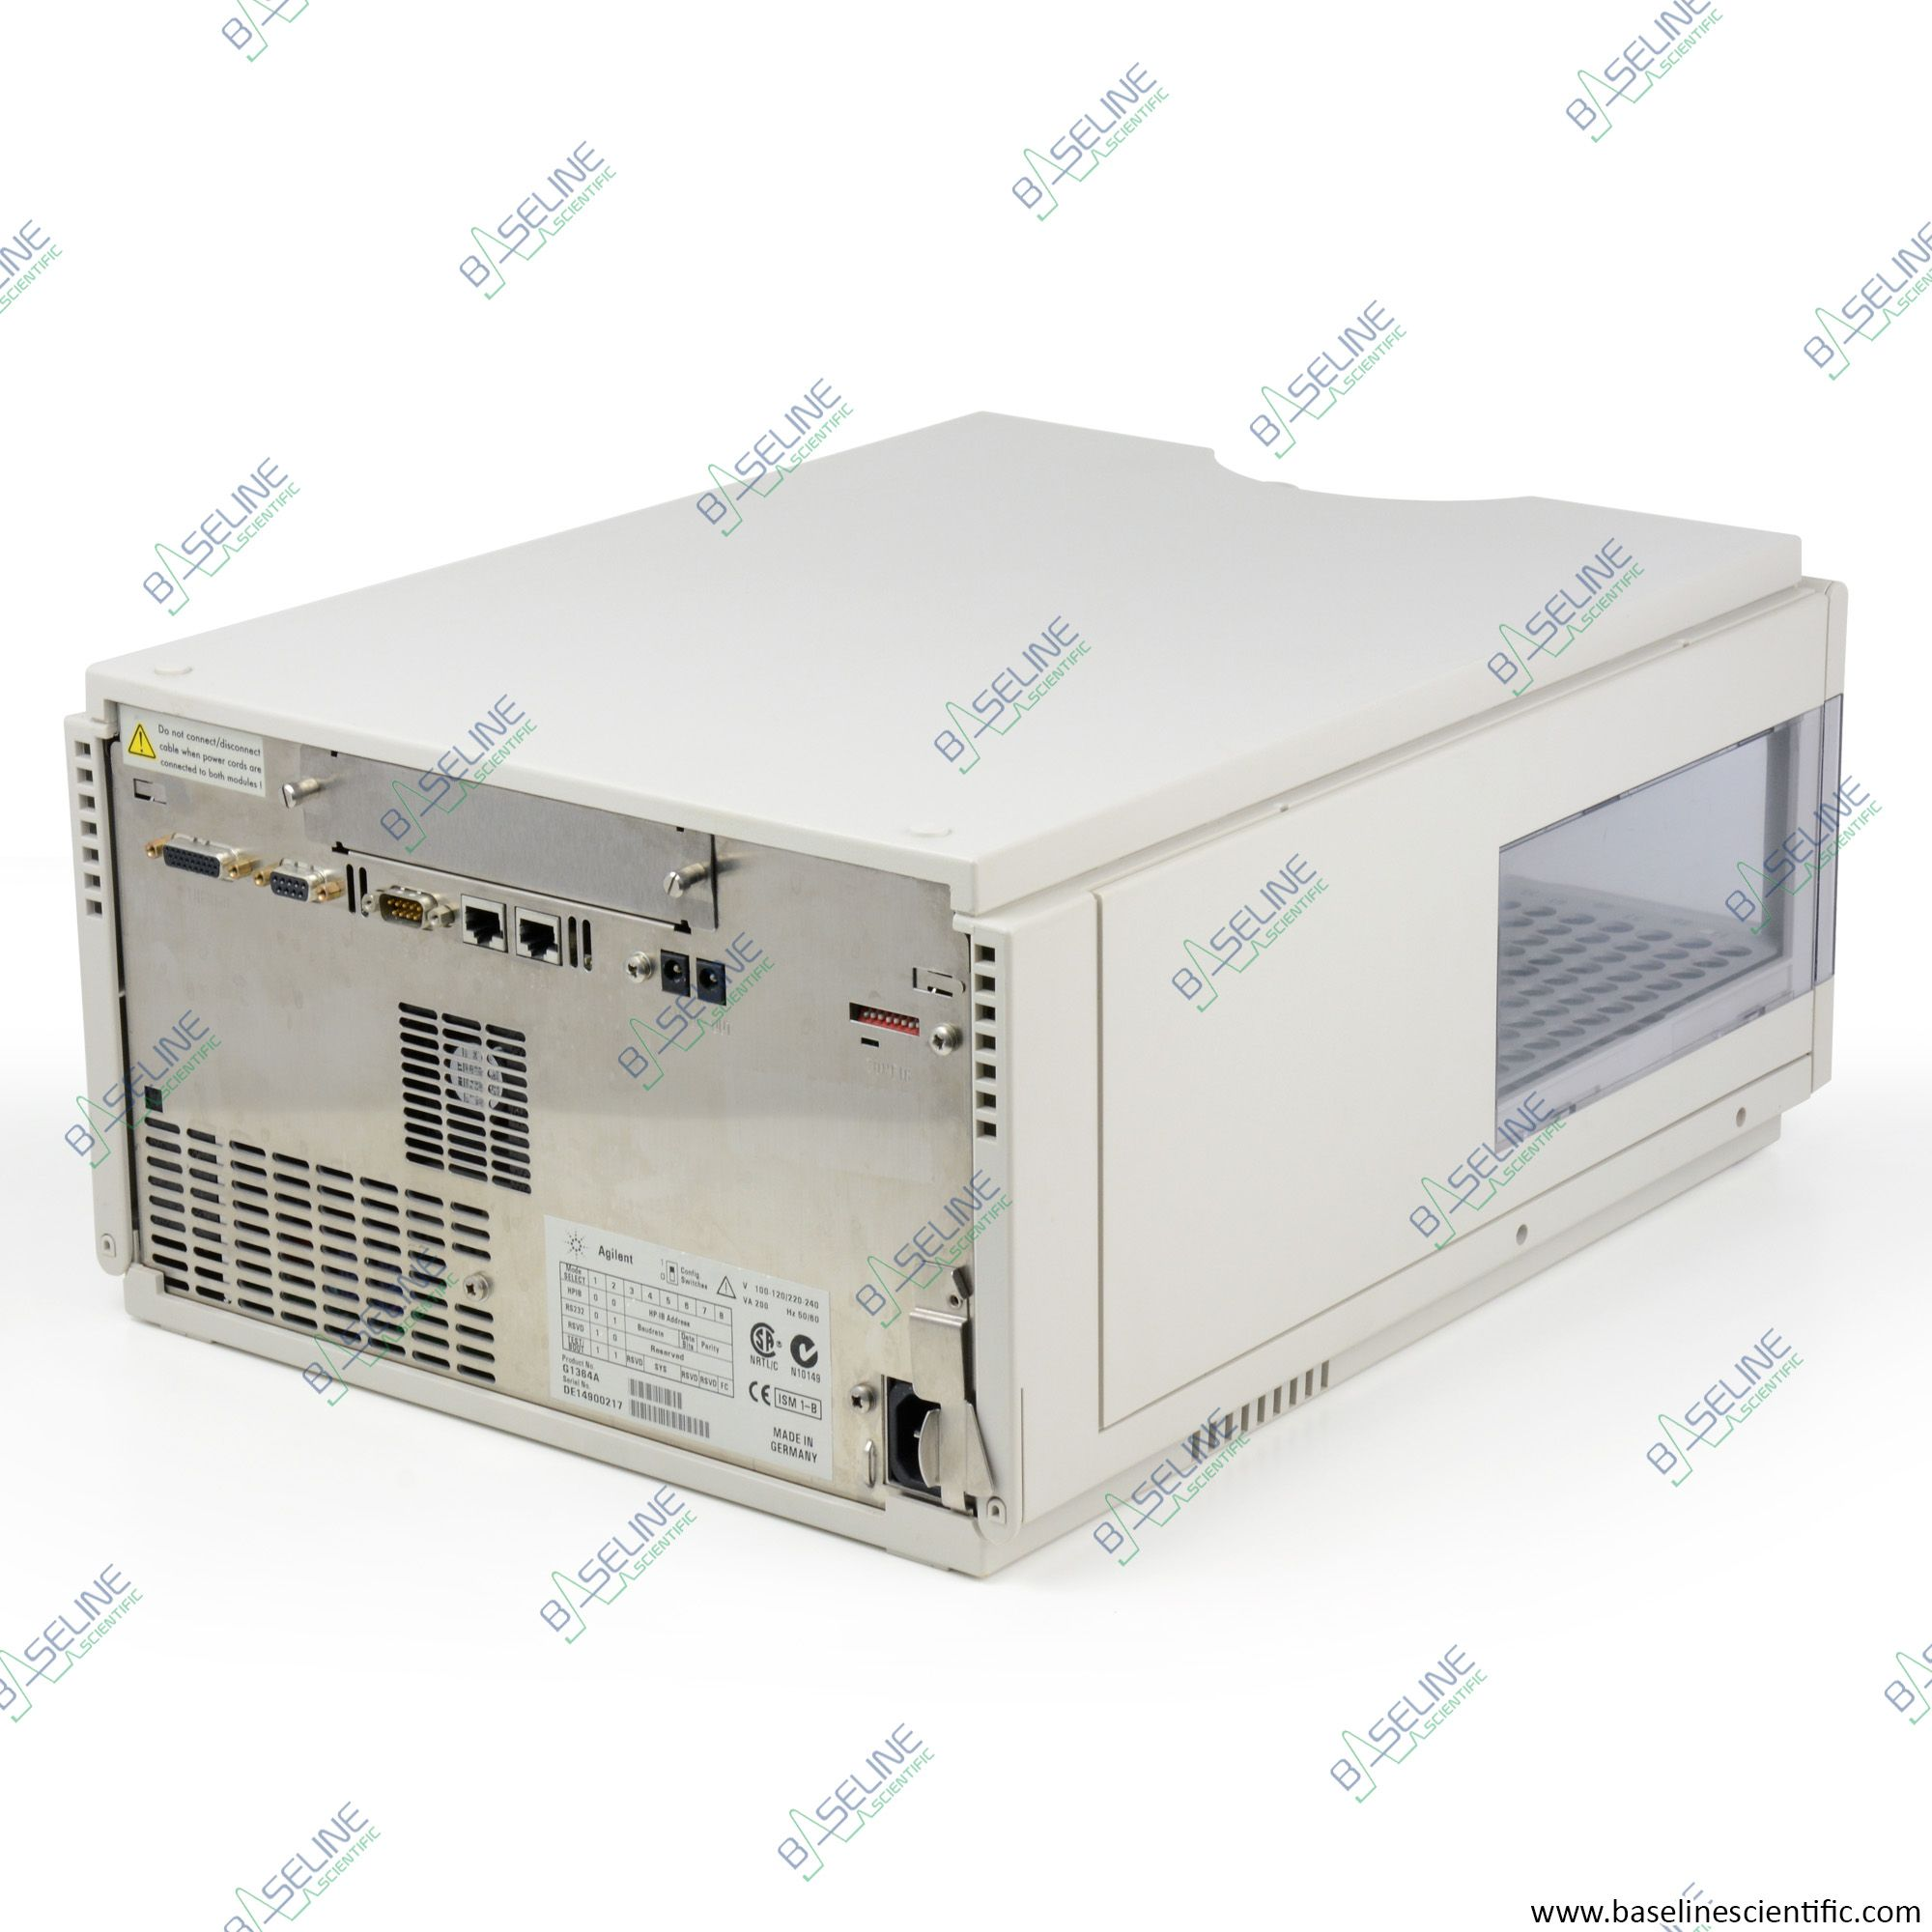 Refurbished Agilent HP 1100 G1364A Analytical Fraction Collector with ONE YEAR WARRANTY